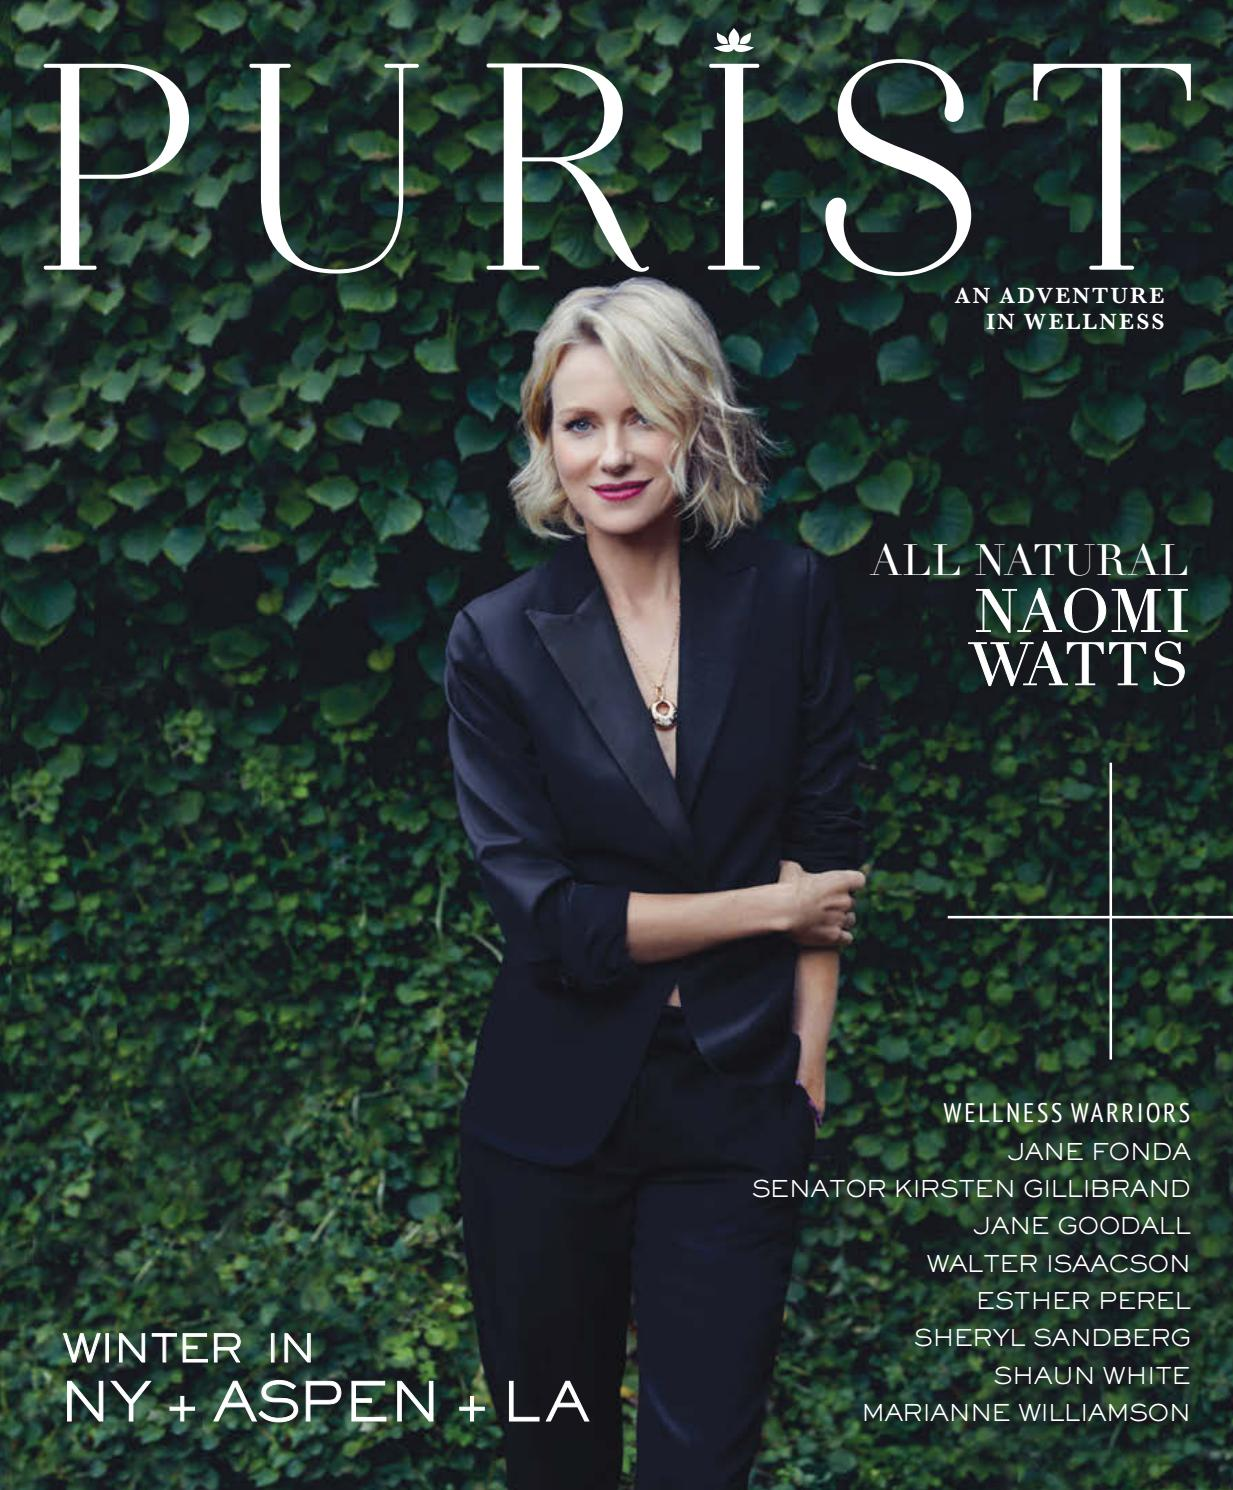 b919d6675c The Purist - Winter Issue 2017 by The Purist - issuu